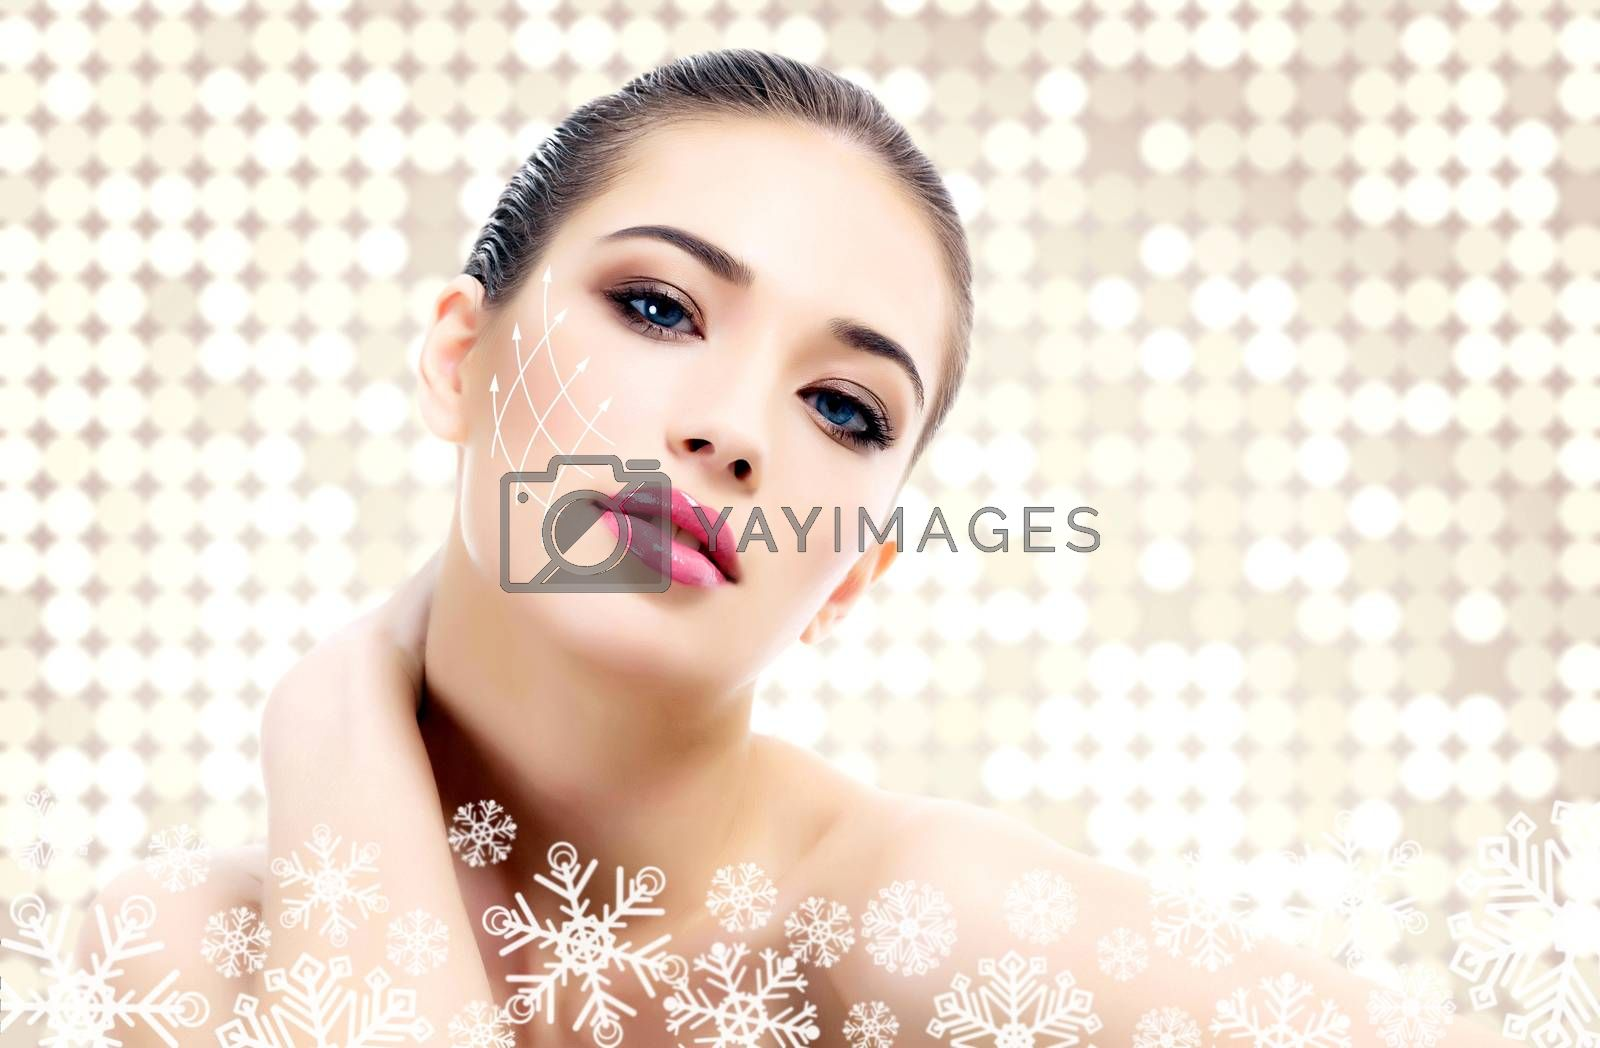 Young beautiful woman with clean fresh skin, abstract background with snowflakes